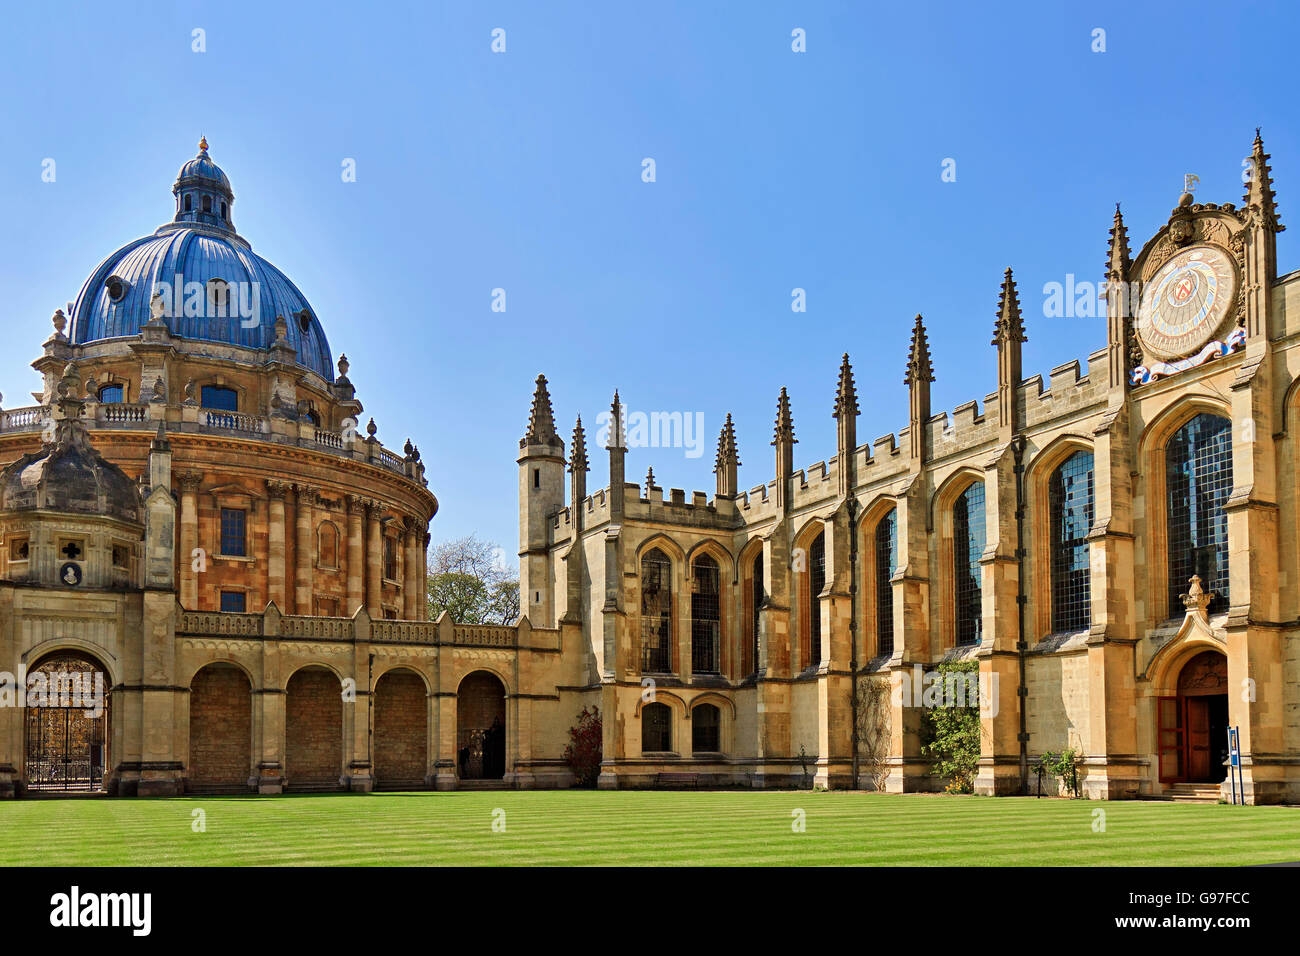 UK Oxford All Souls College - Stock Image